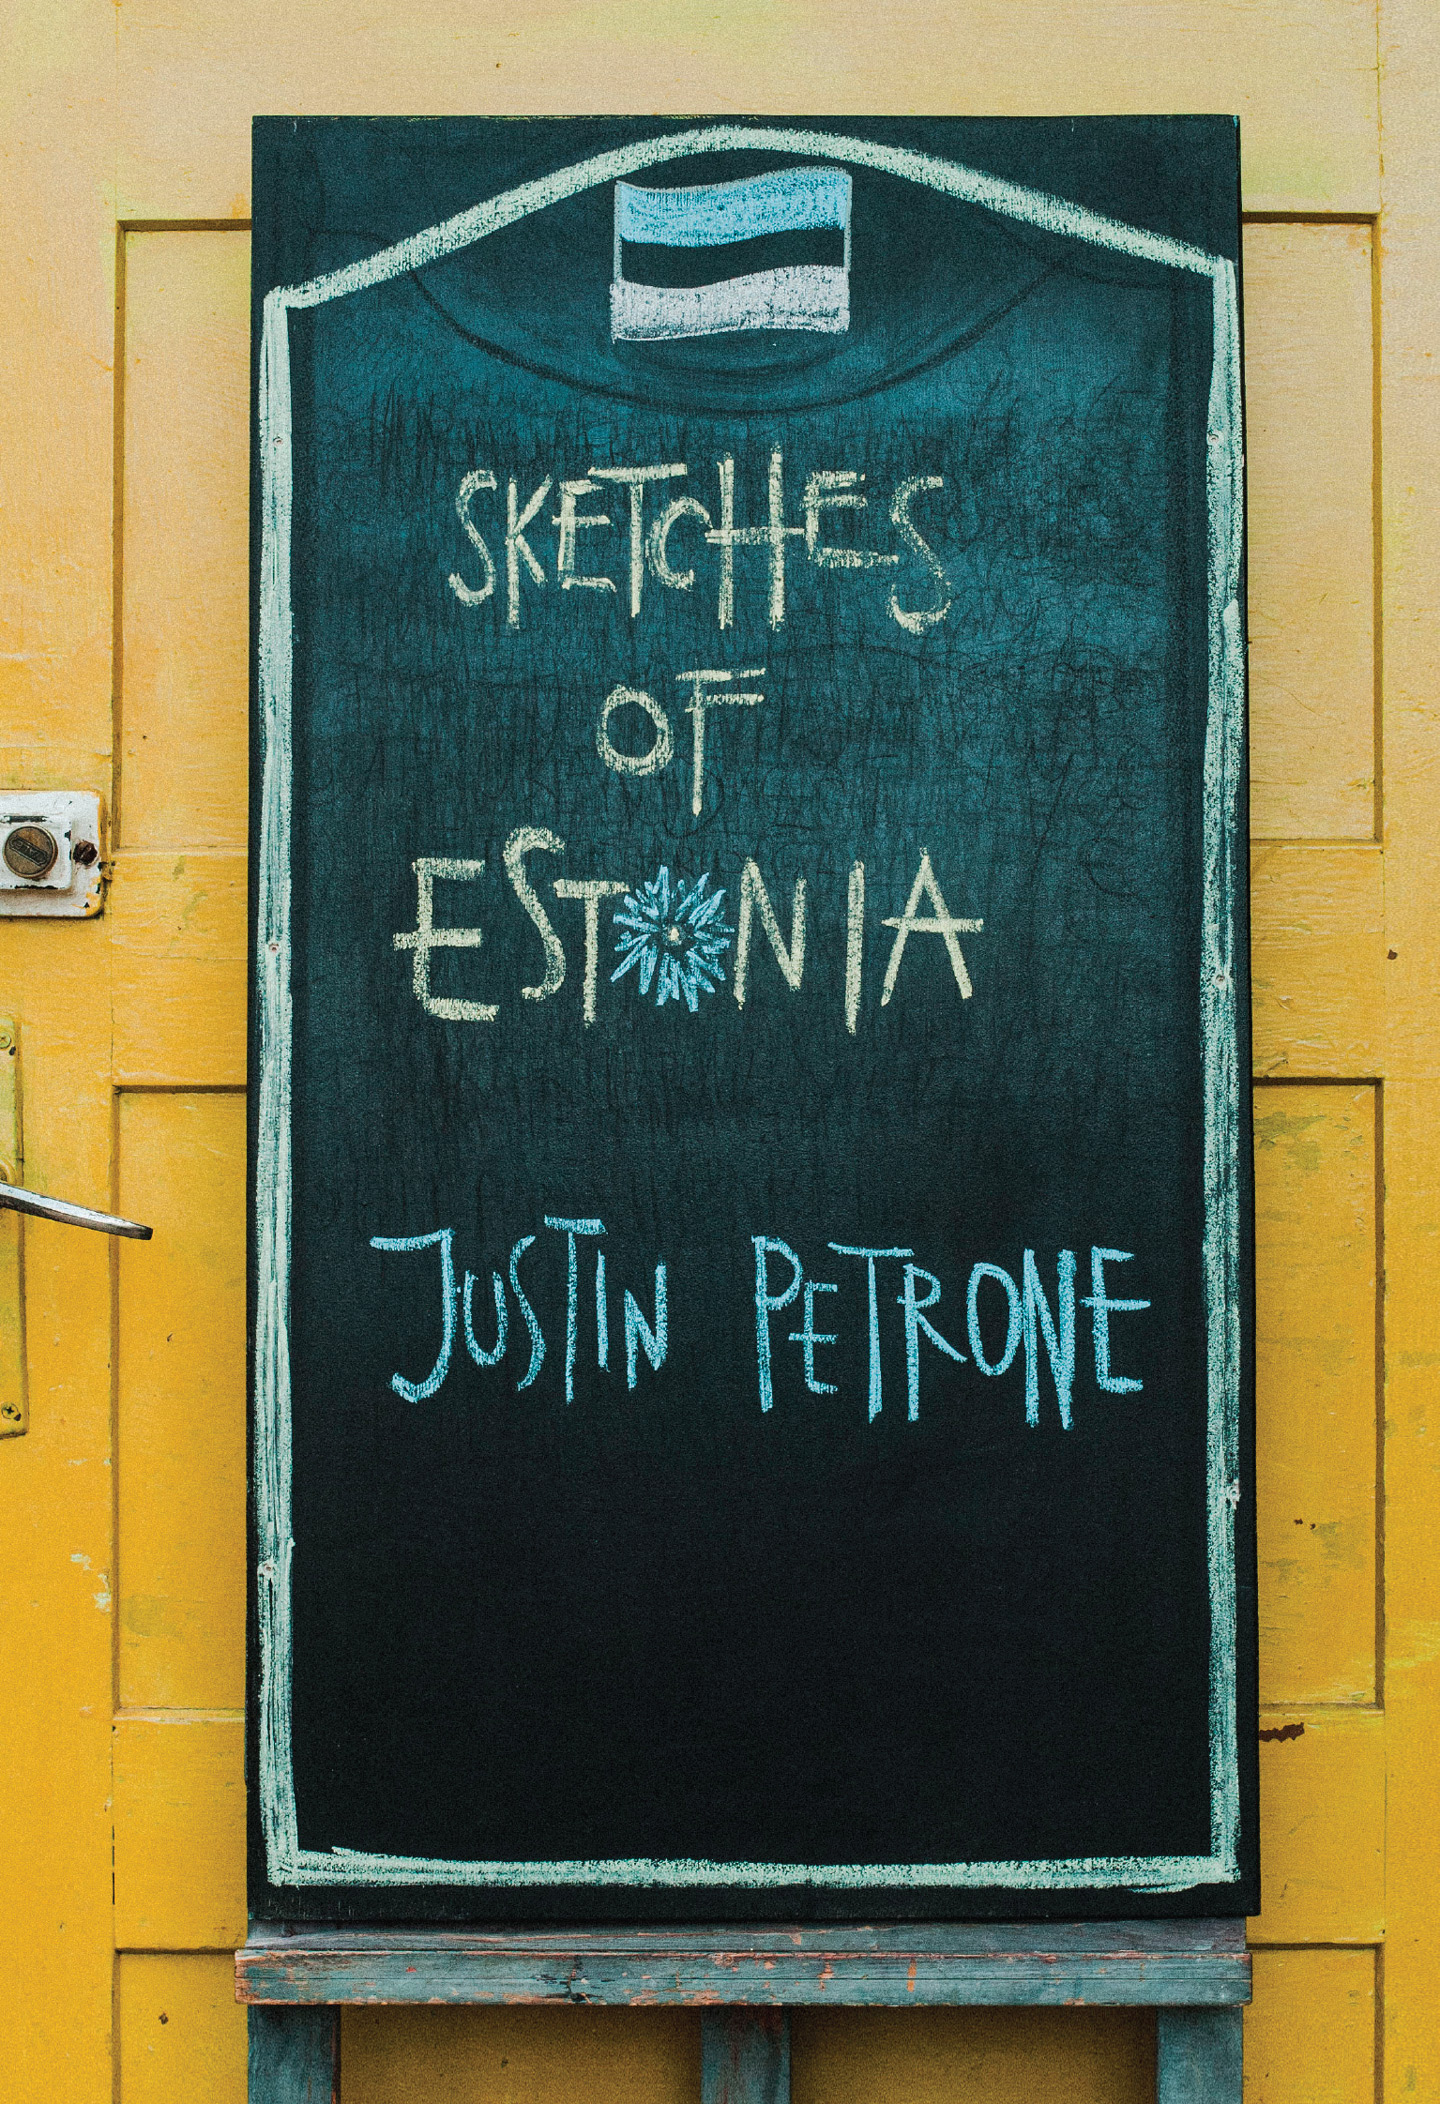 Justin Petrone Sketches of Estonia